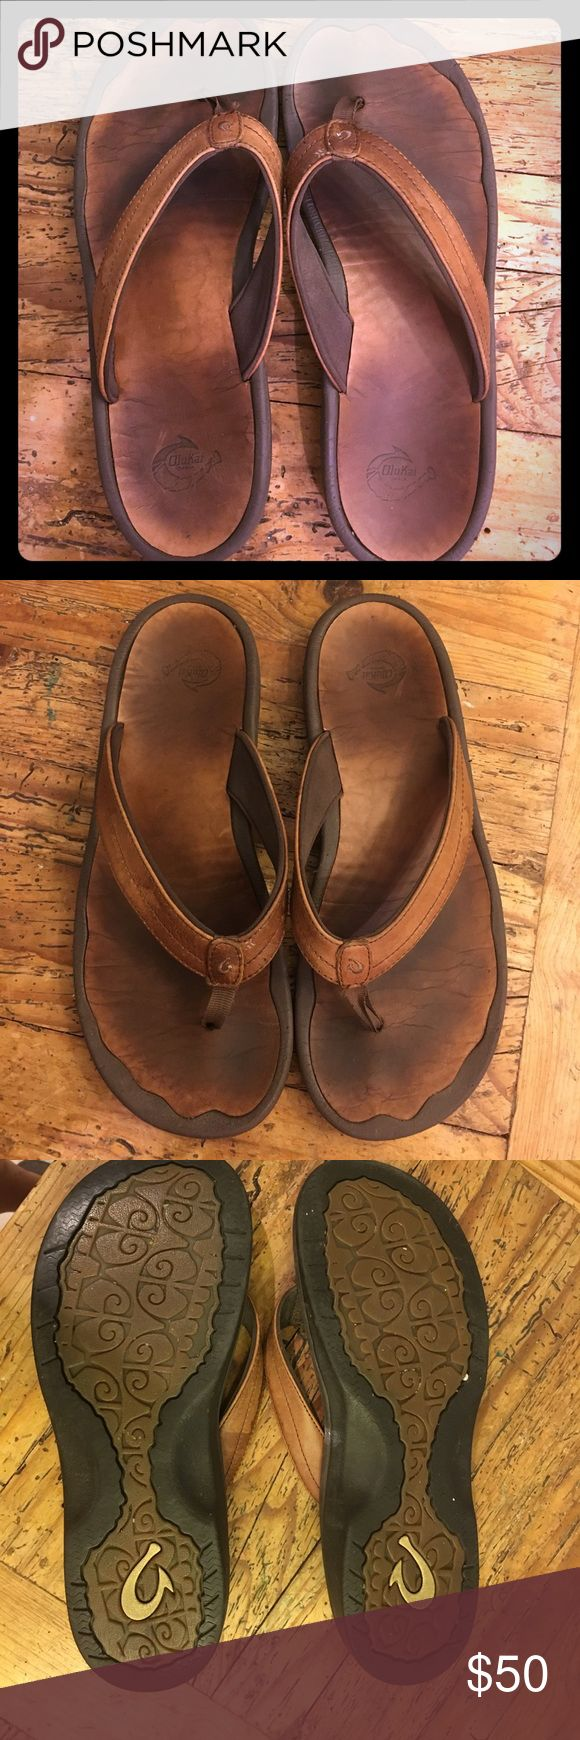 Womens brown leather Olukai sandals 9/39 These are a beautiful pair of Okukai brown leather sandals. Haven't worn too much but super comfortable! Size 9/39 OluKai Shoes Sandals